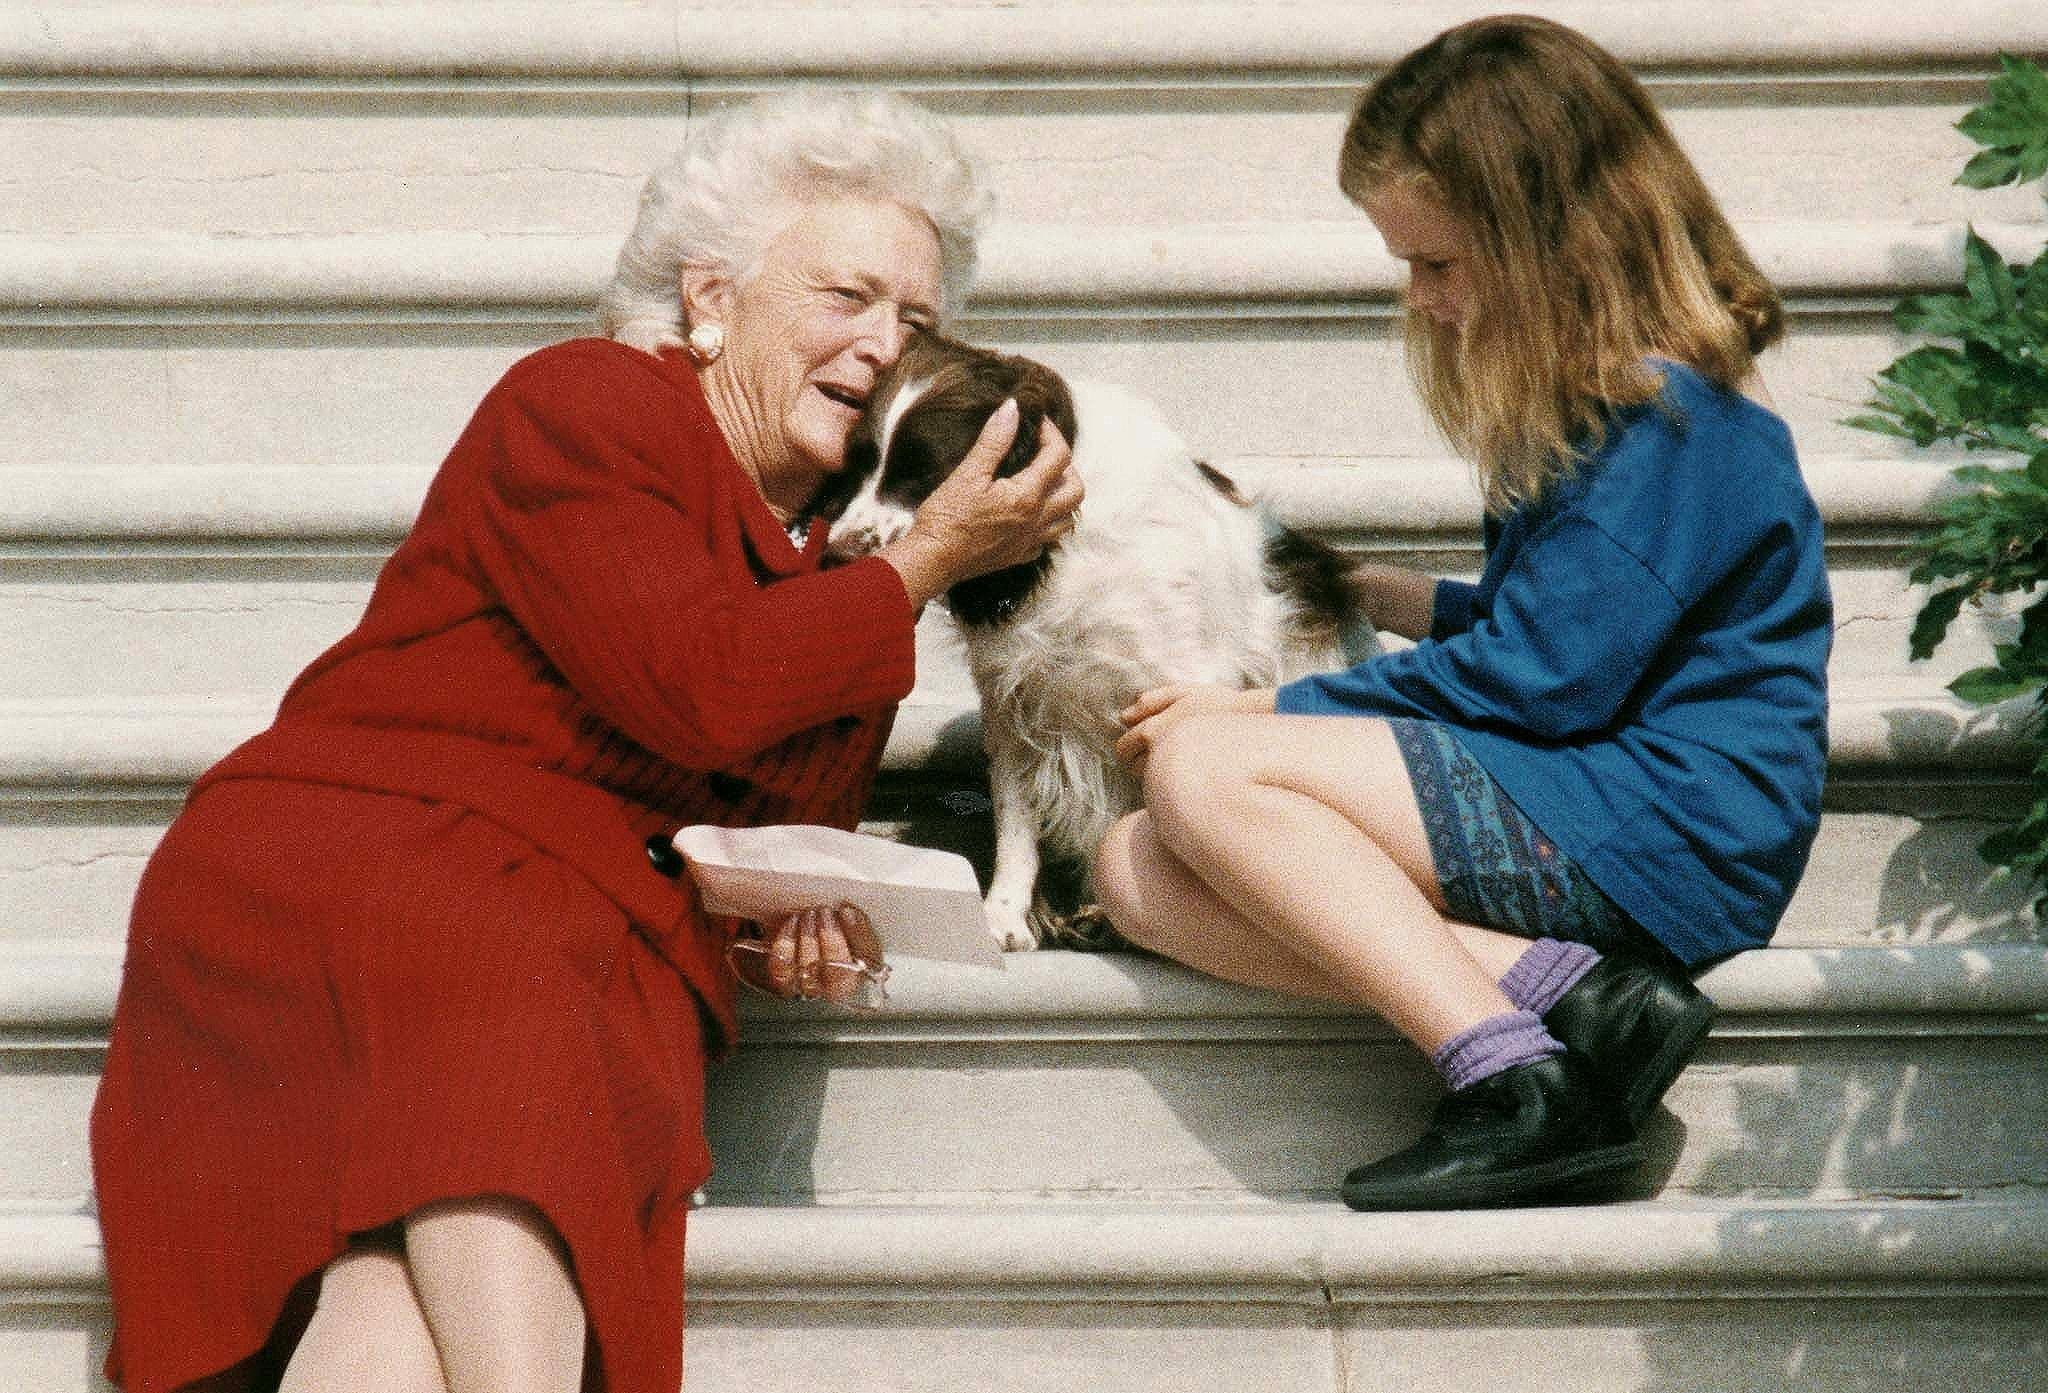 This file photo shows former First Lady Barbara Bush(L) talking to her dog Millie(C) as she and grandaughter Barbara Bush(R), age nine, wait for US President George Bush to return to the White House 13 September 1991, in Washington,DC. The President was undergoing a medical checkup at Bethesda Naval Medical Center. Grandaughter Barbara is the daughter of President George W. Bush. AFP PHOTO/Jennifer LAW